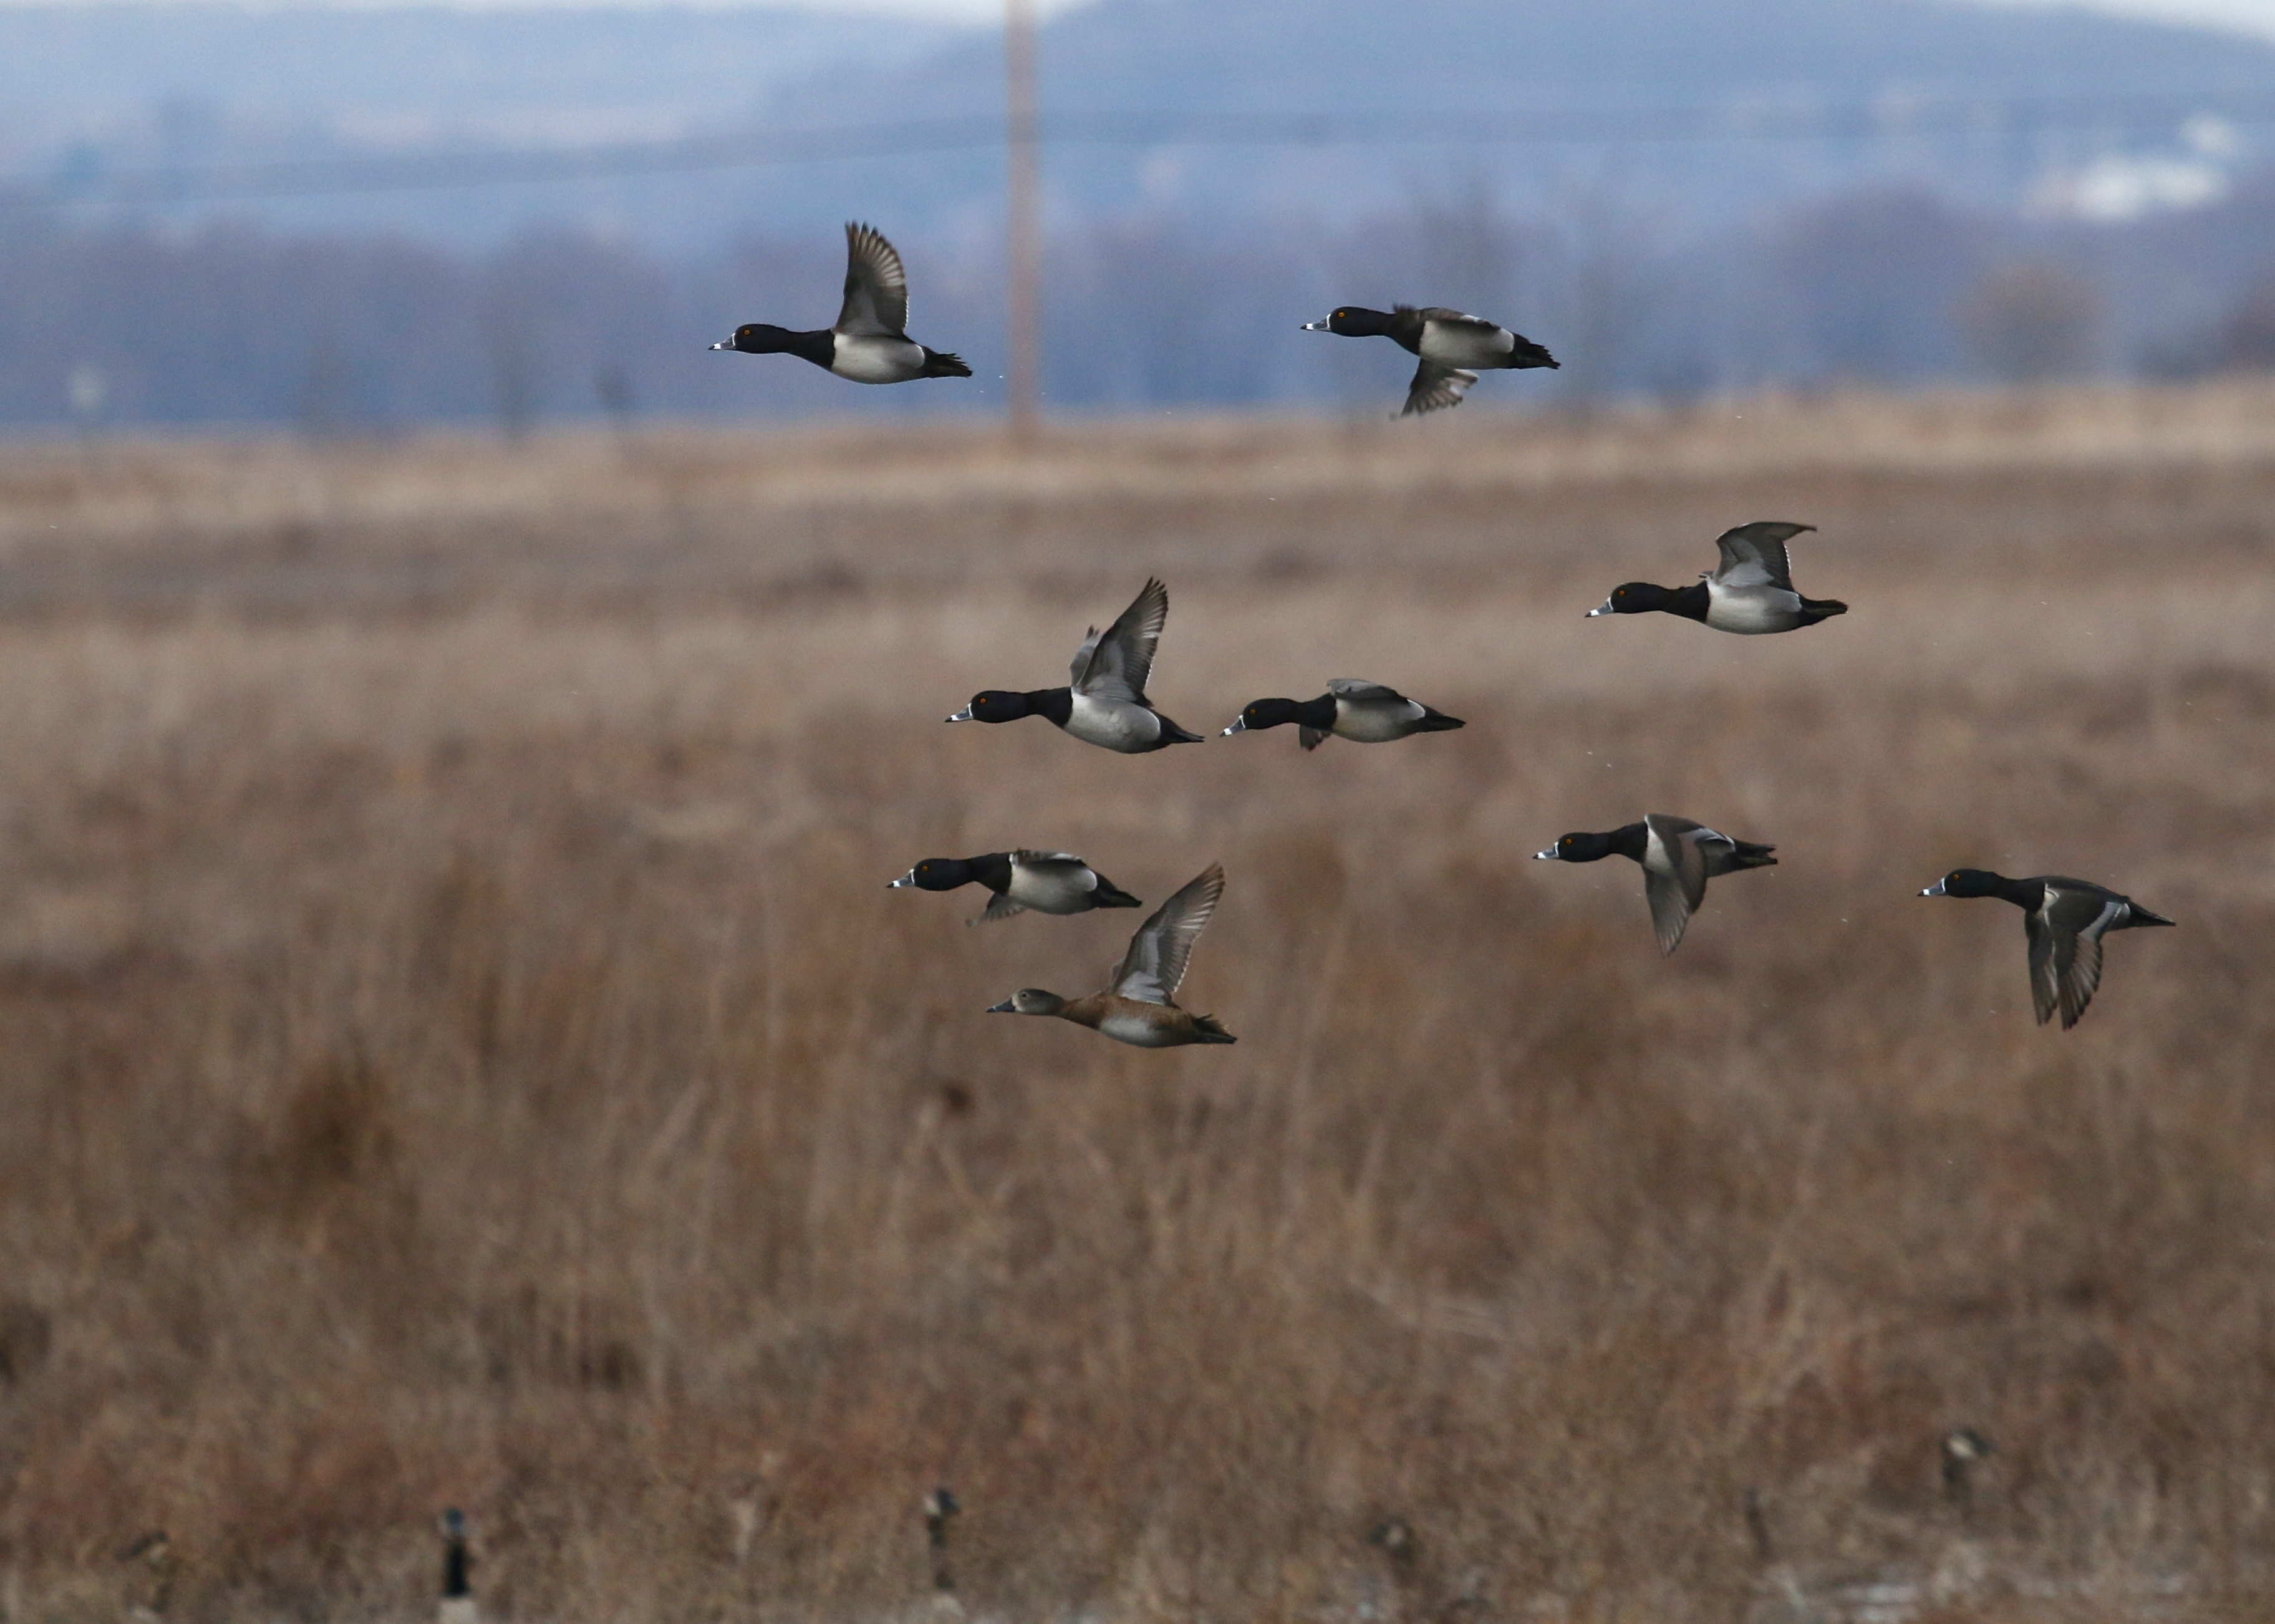 More RNDUs in flight at the Wallkill River NWR, 3/27/14.